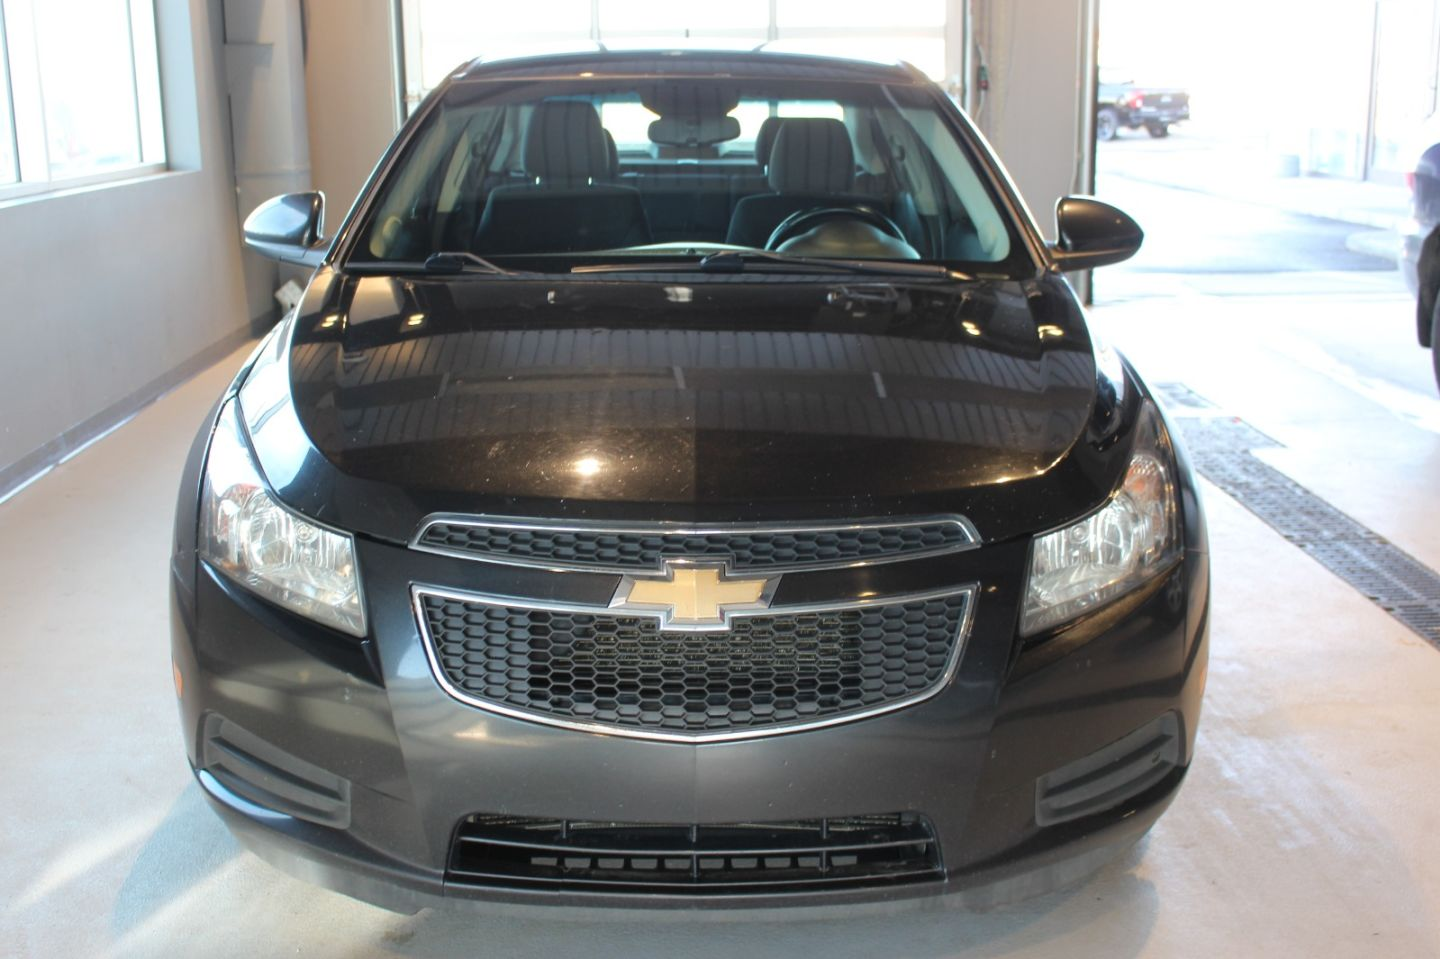 2013 Chevrolet Cruze LT Turbo for sale in Spruce Grove, Alberta